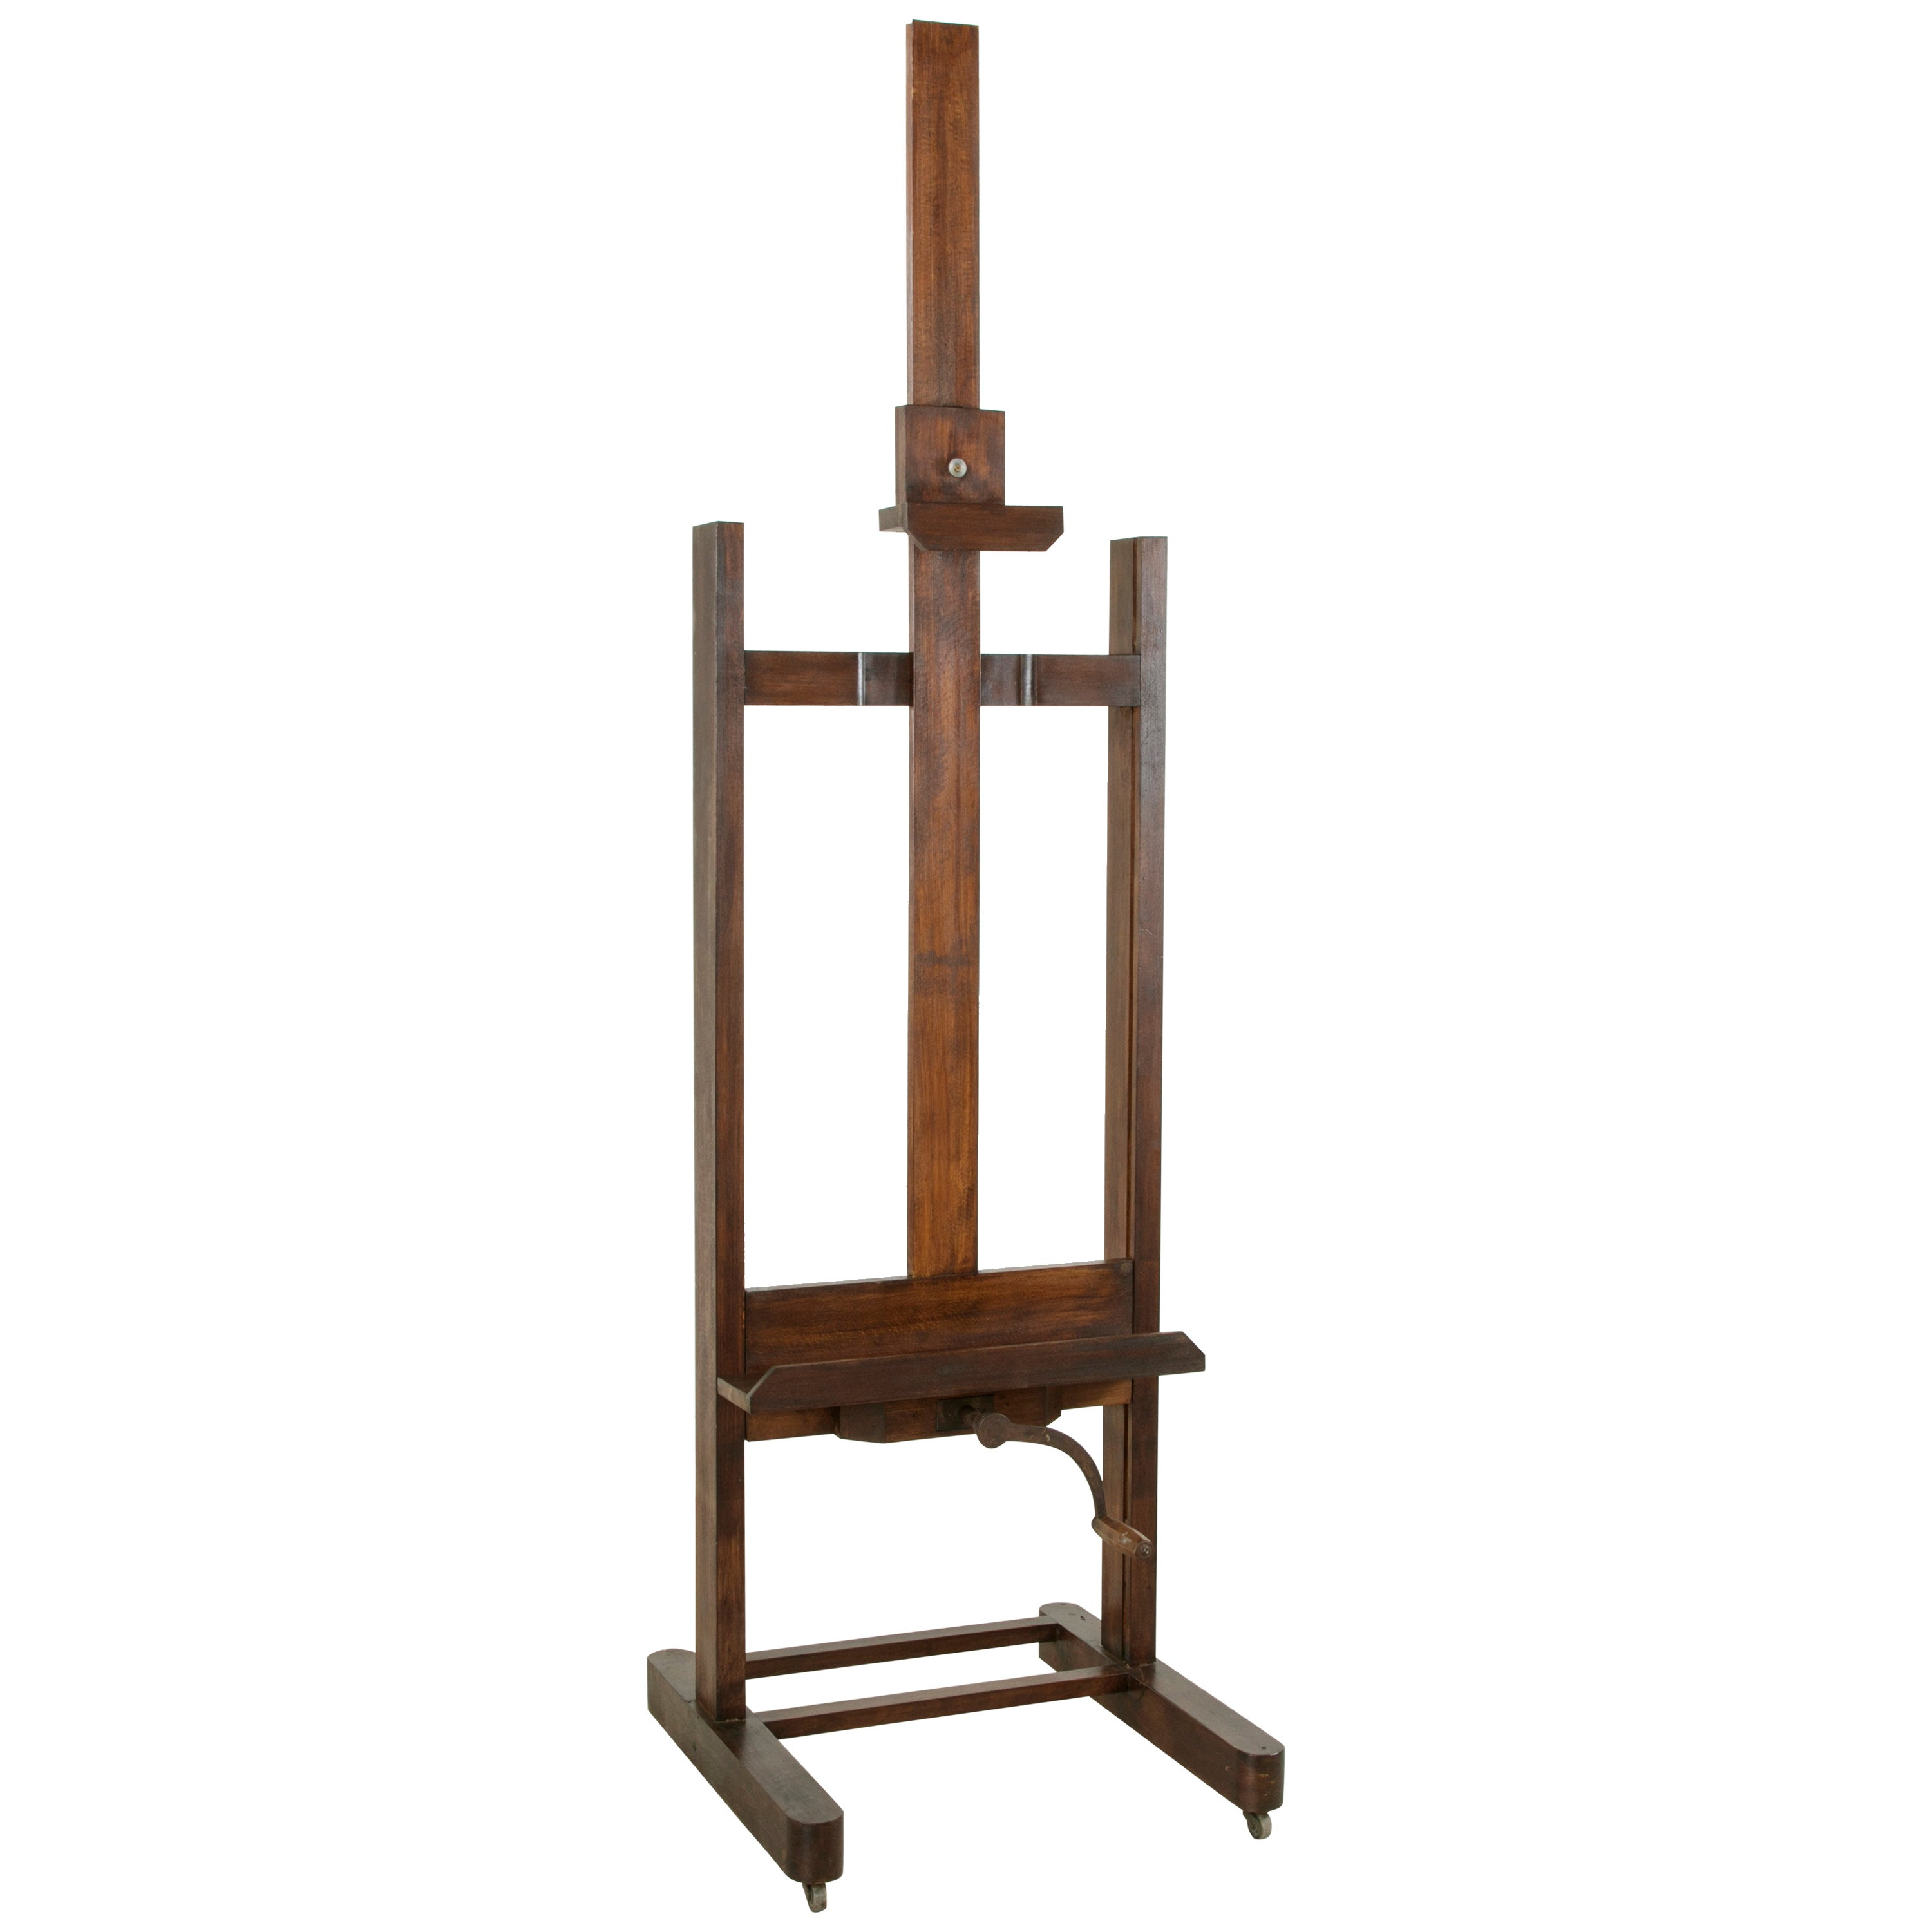 French Bentwood Thonet Style Coat Rack Or Hall Tree, Circa